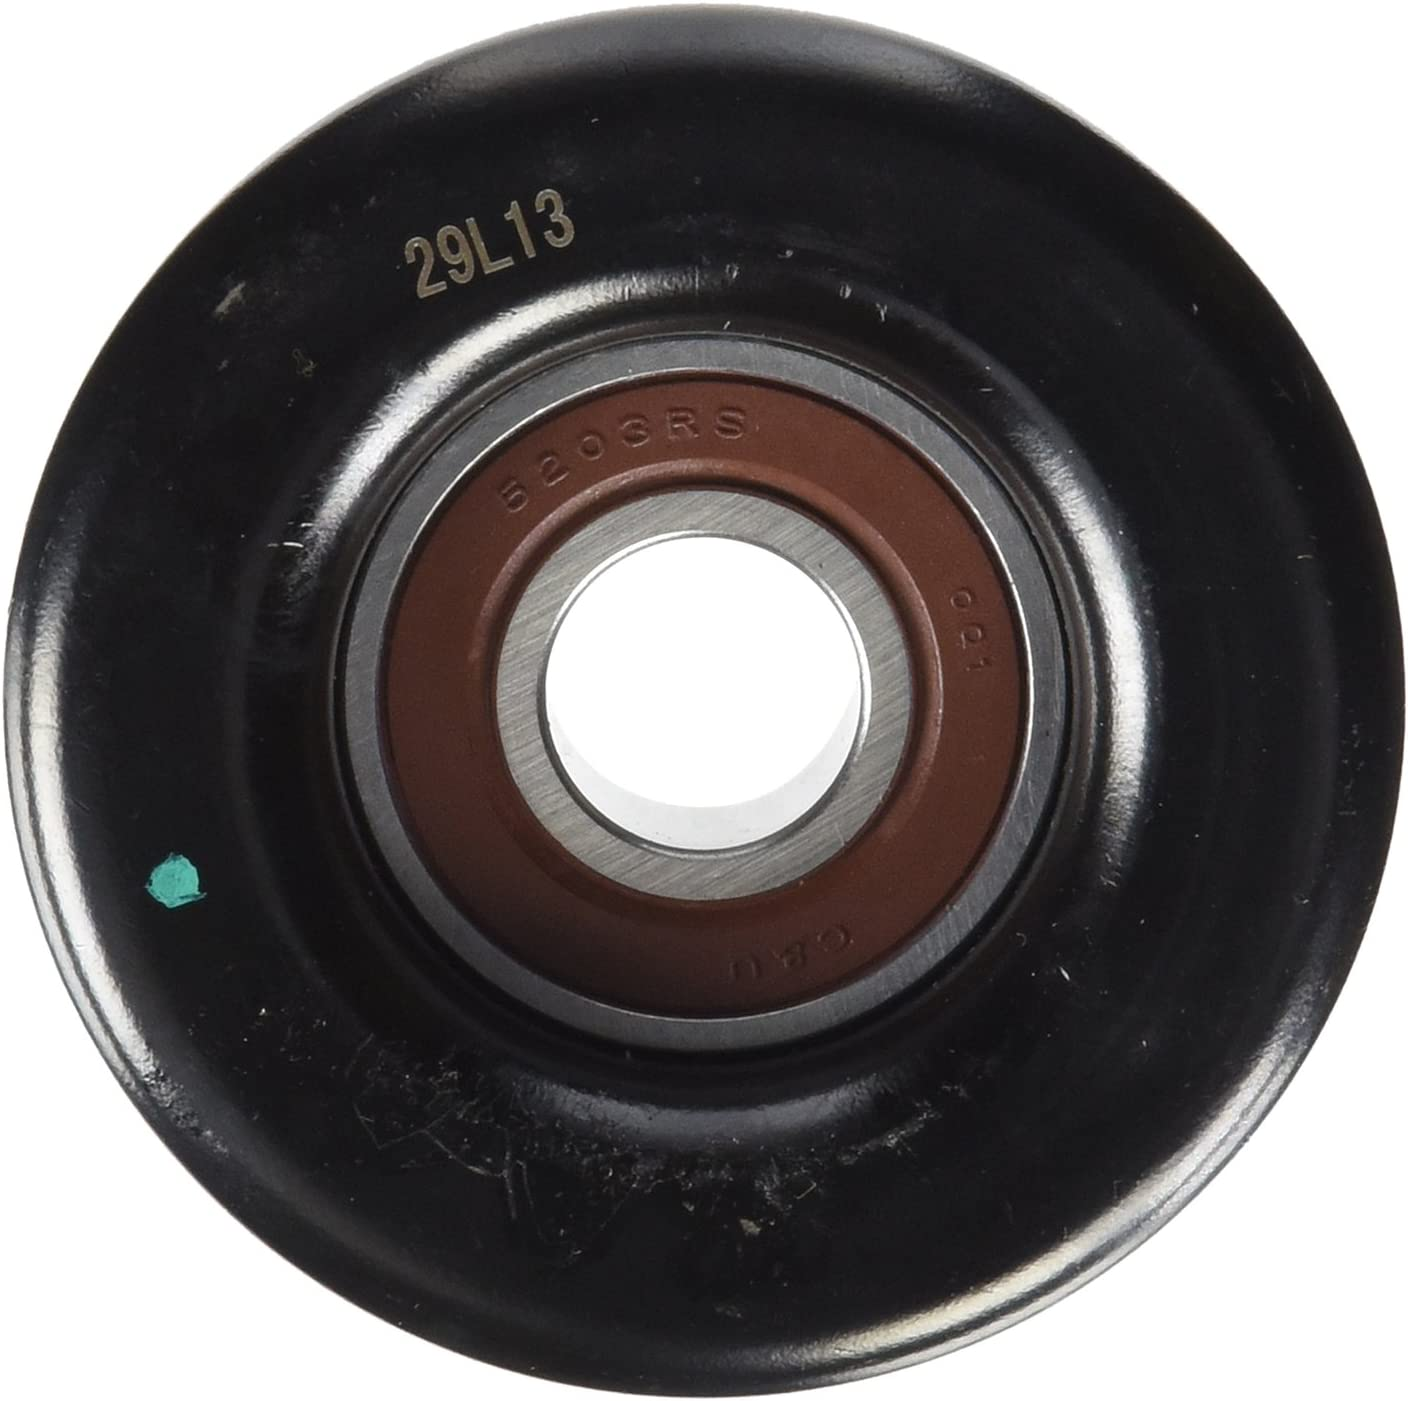 Dayco 89159 Idler Pulley